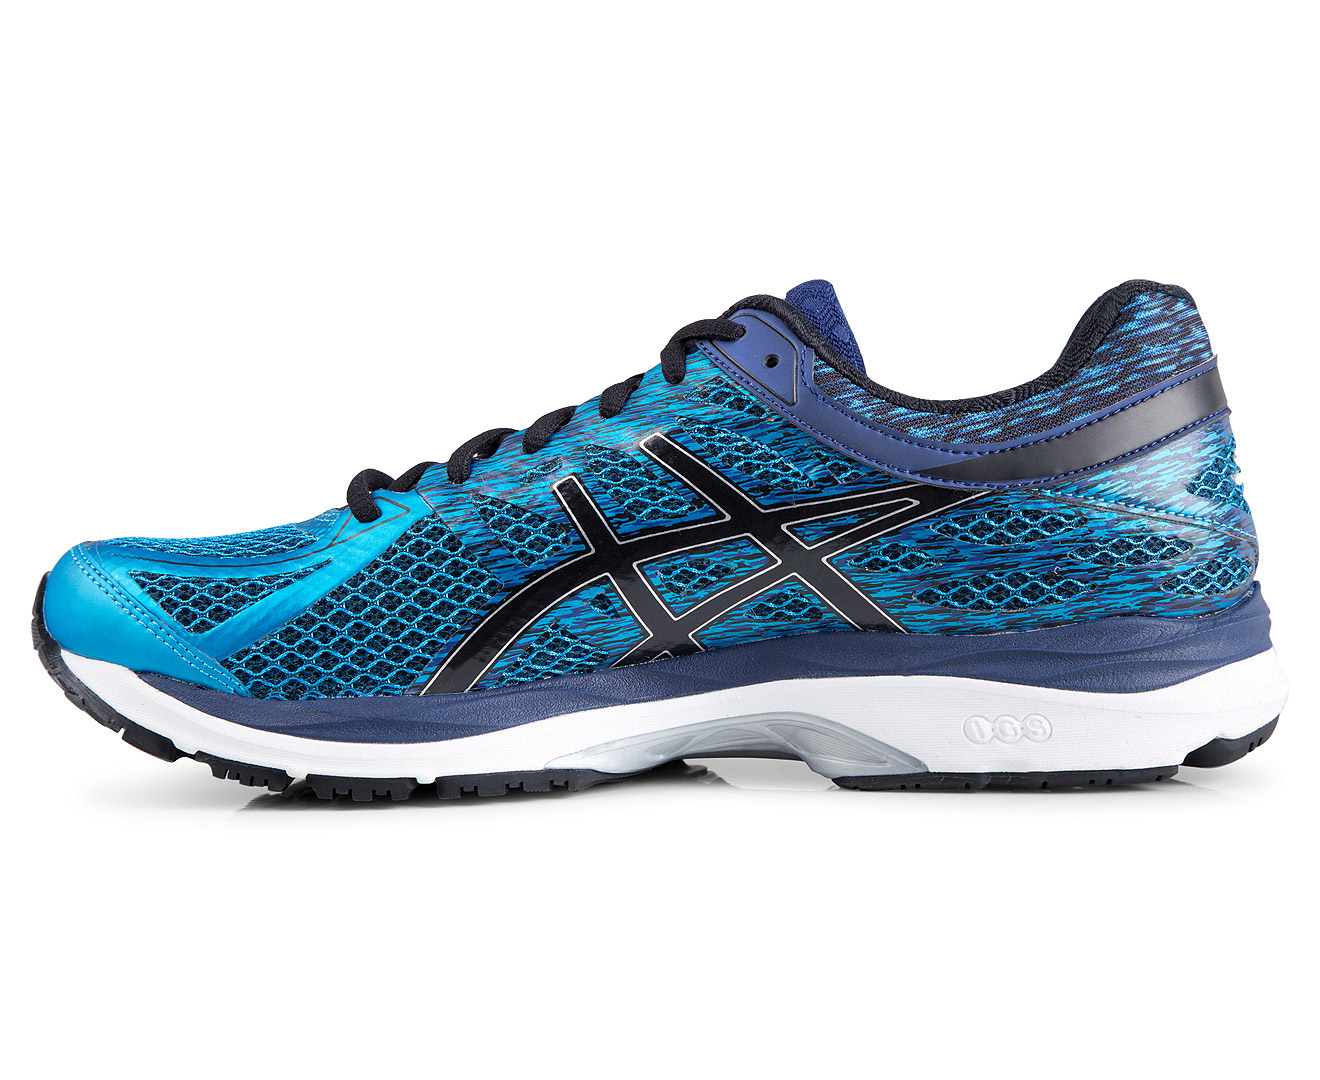 Running Shoes With Most Forefoot Cushioning